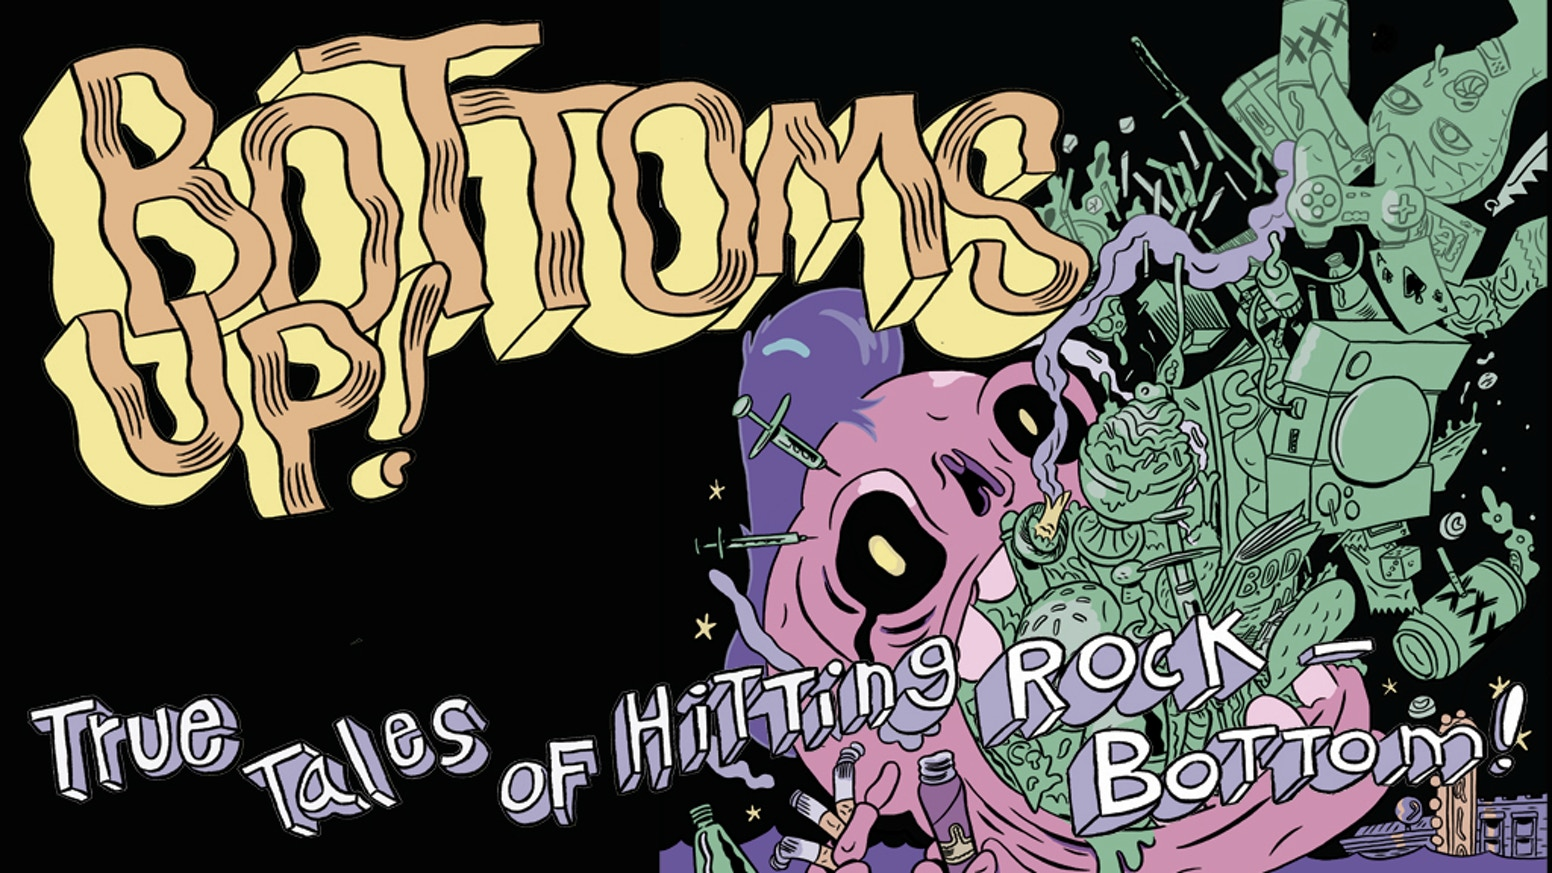 """BOTTOMS UP!"" is an anthology of true tales of hitting rock-bottom adapted into comics form."